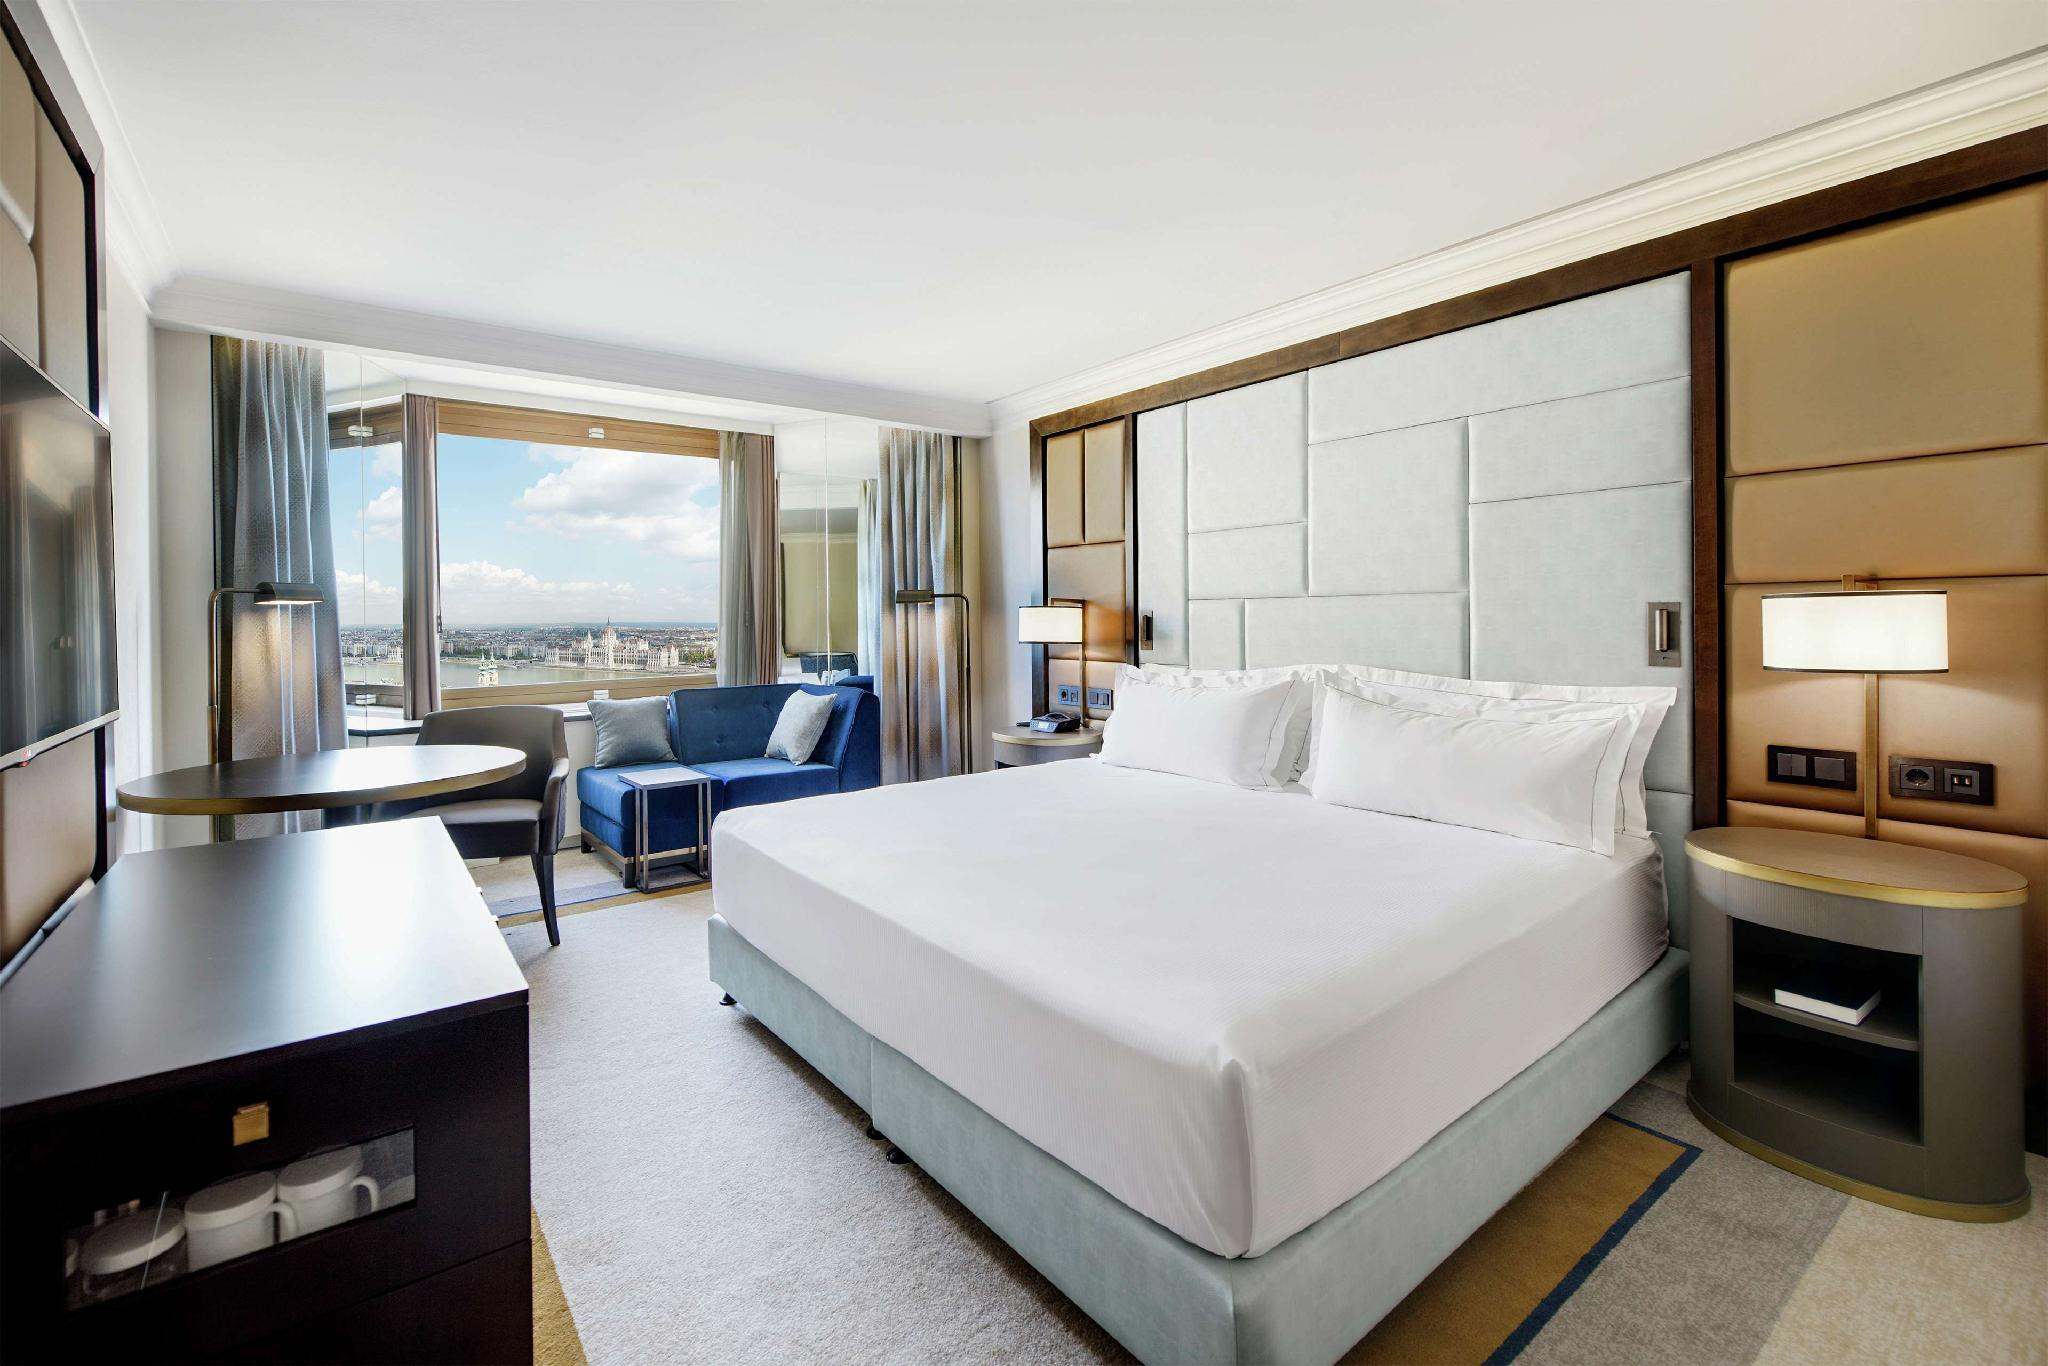 King Superior Room With Danube River View